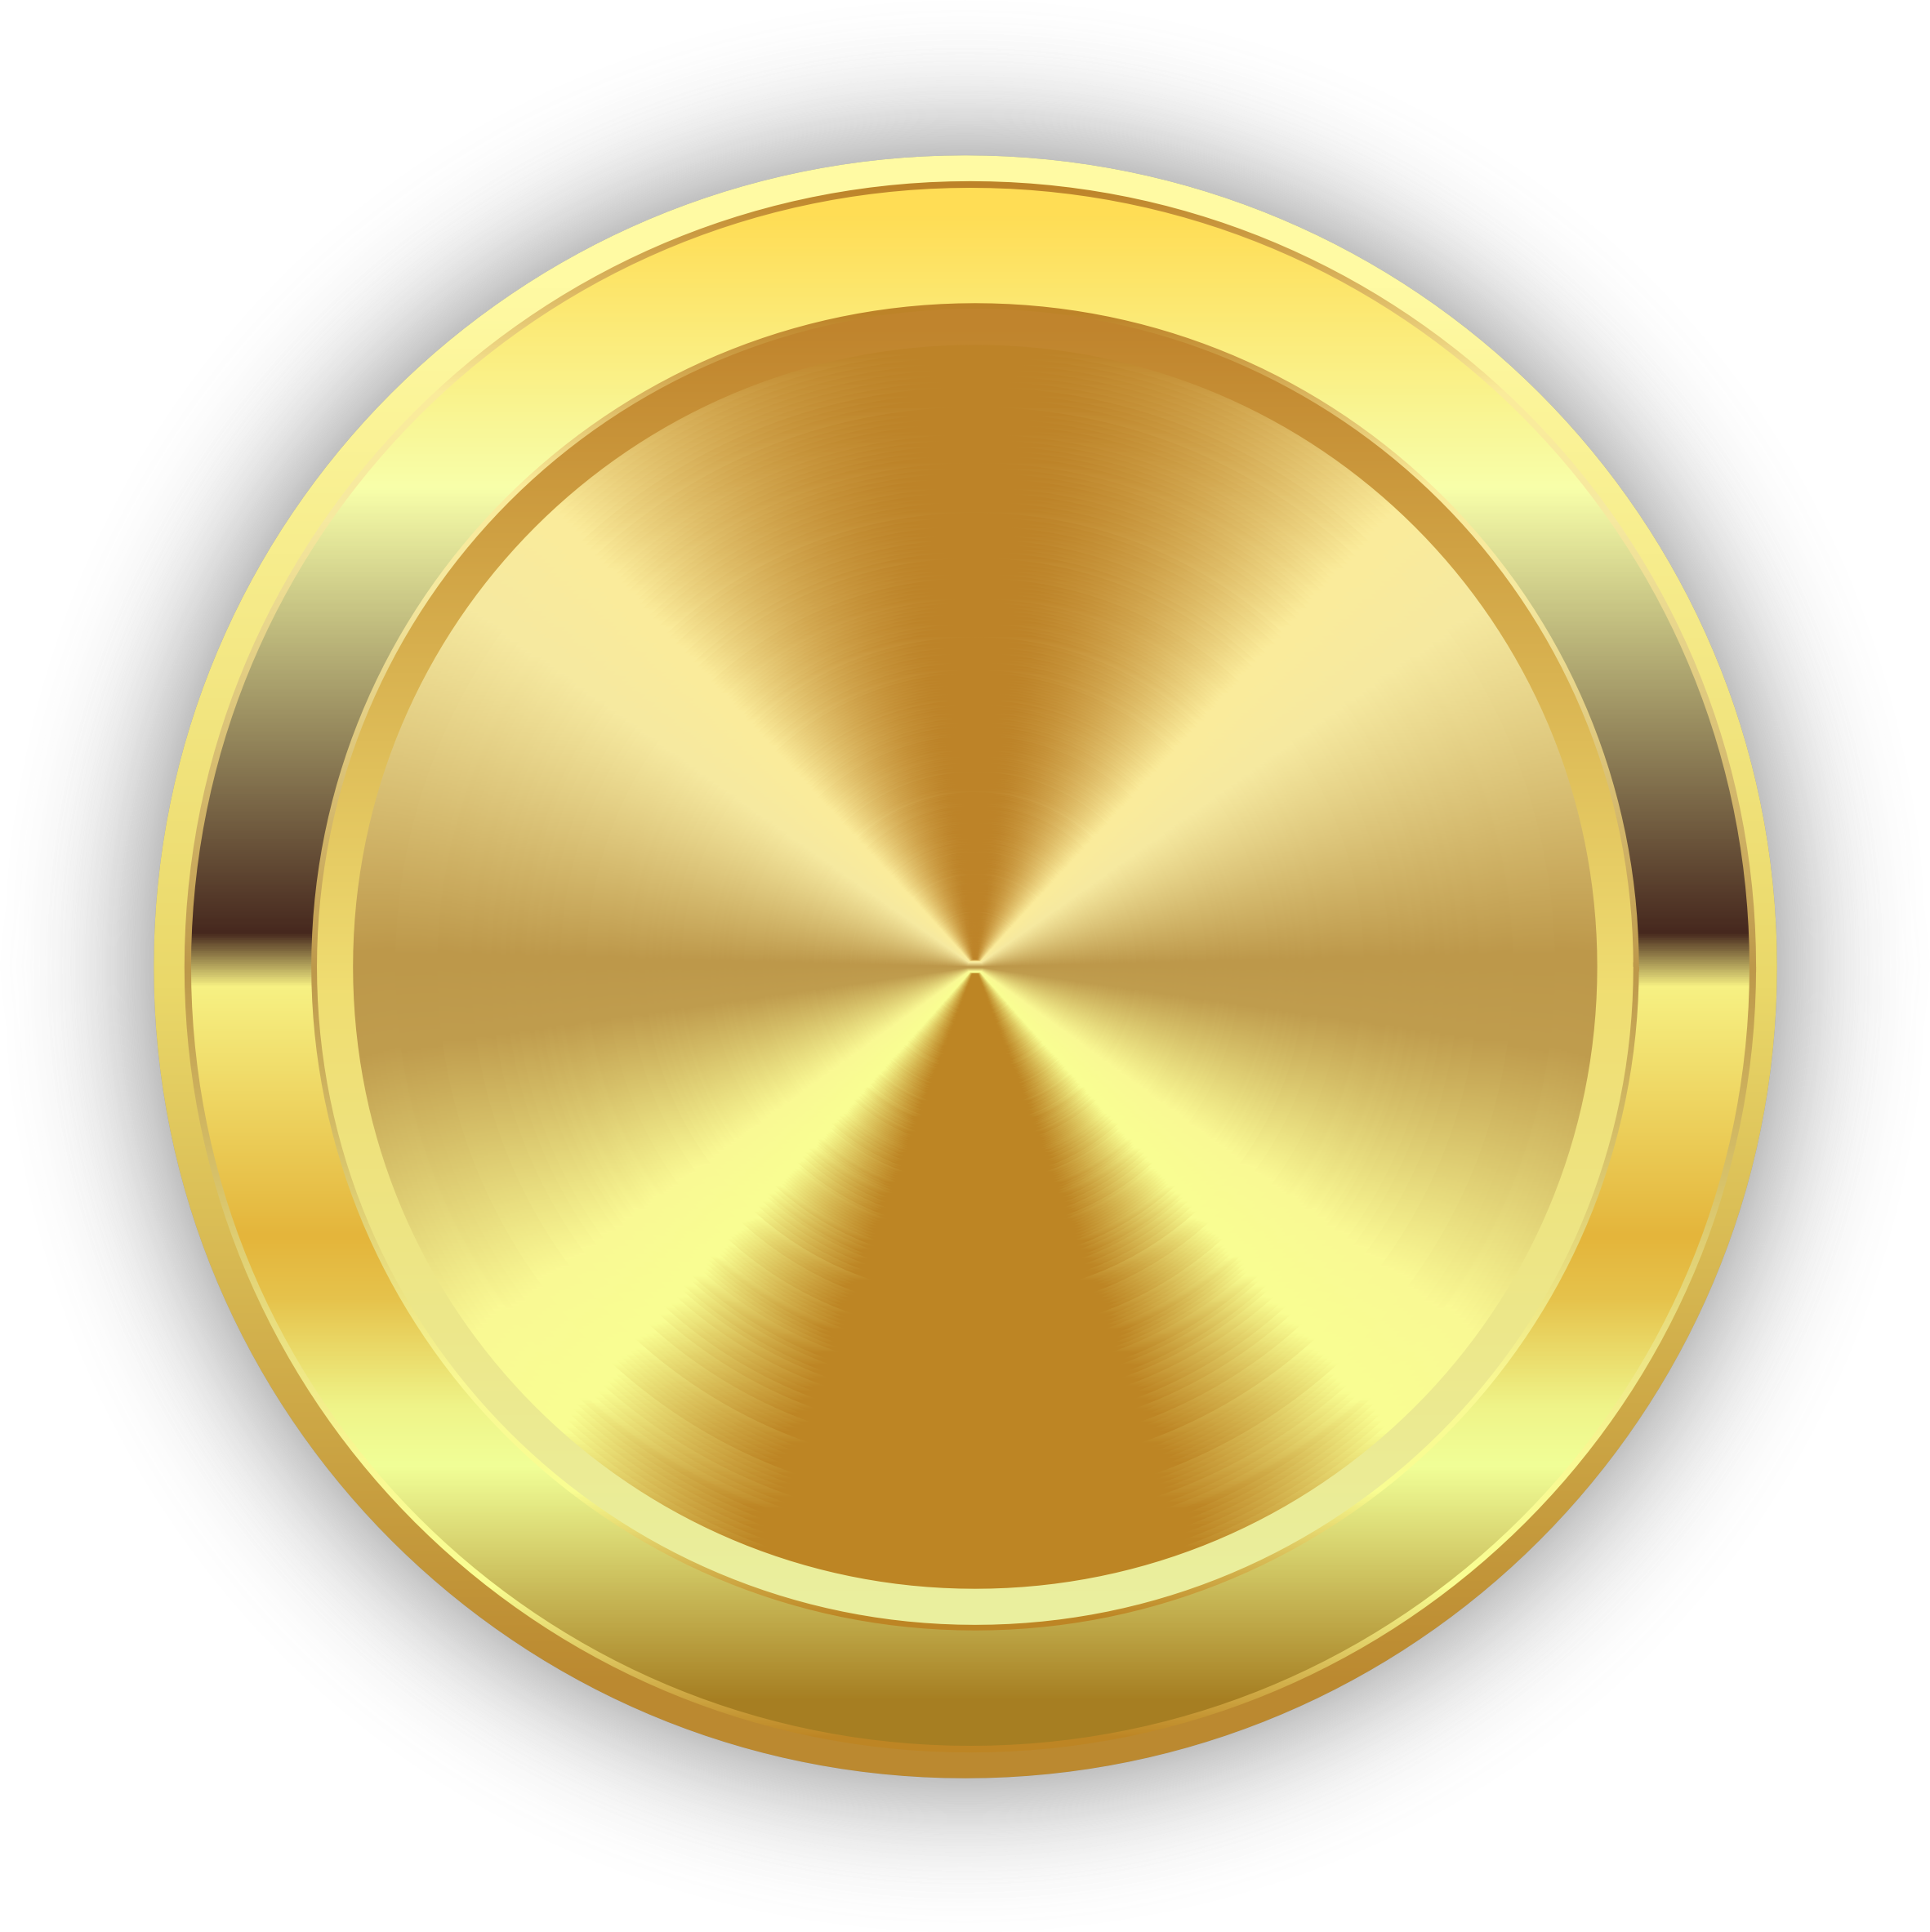 Round Golden Badge Icons PNG - Free PNG and Icons Downloads